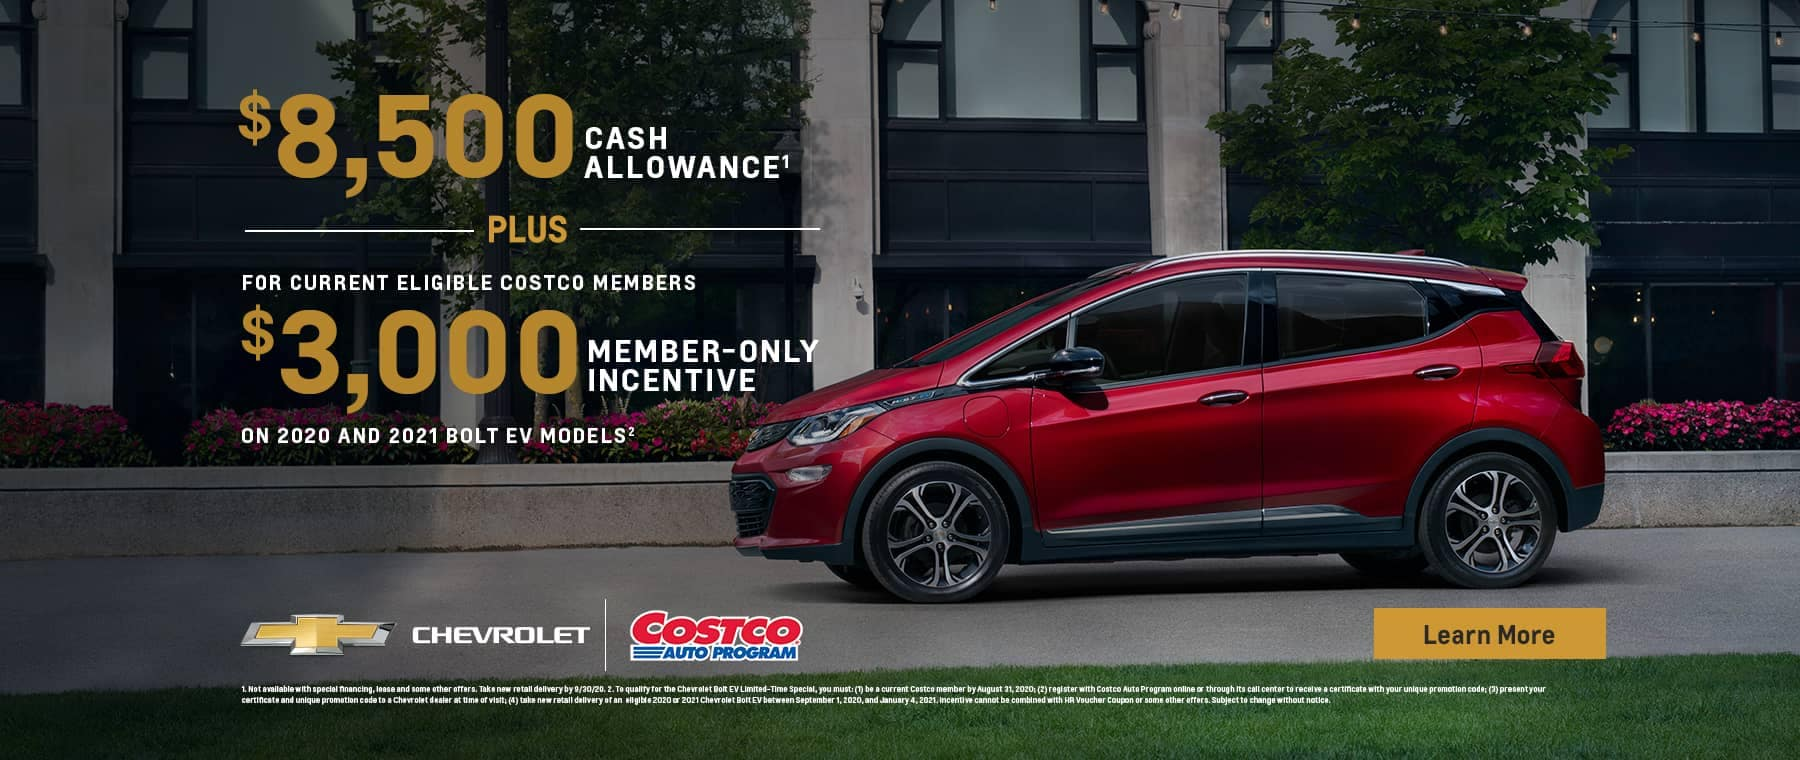 For current eligible costco membets $3,000 member-only incentive on 2020 and 2021 Bolt EV models.